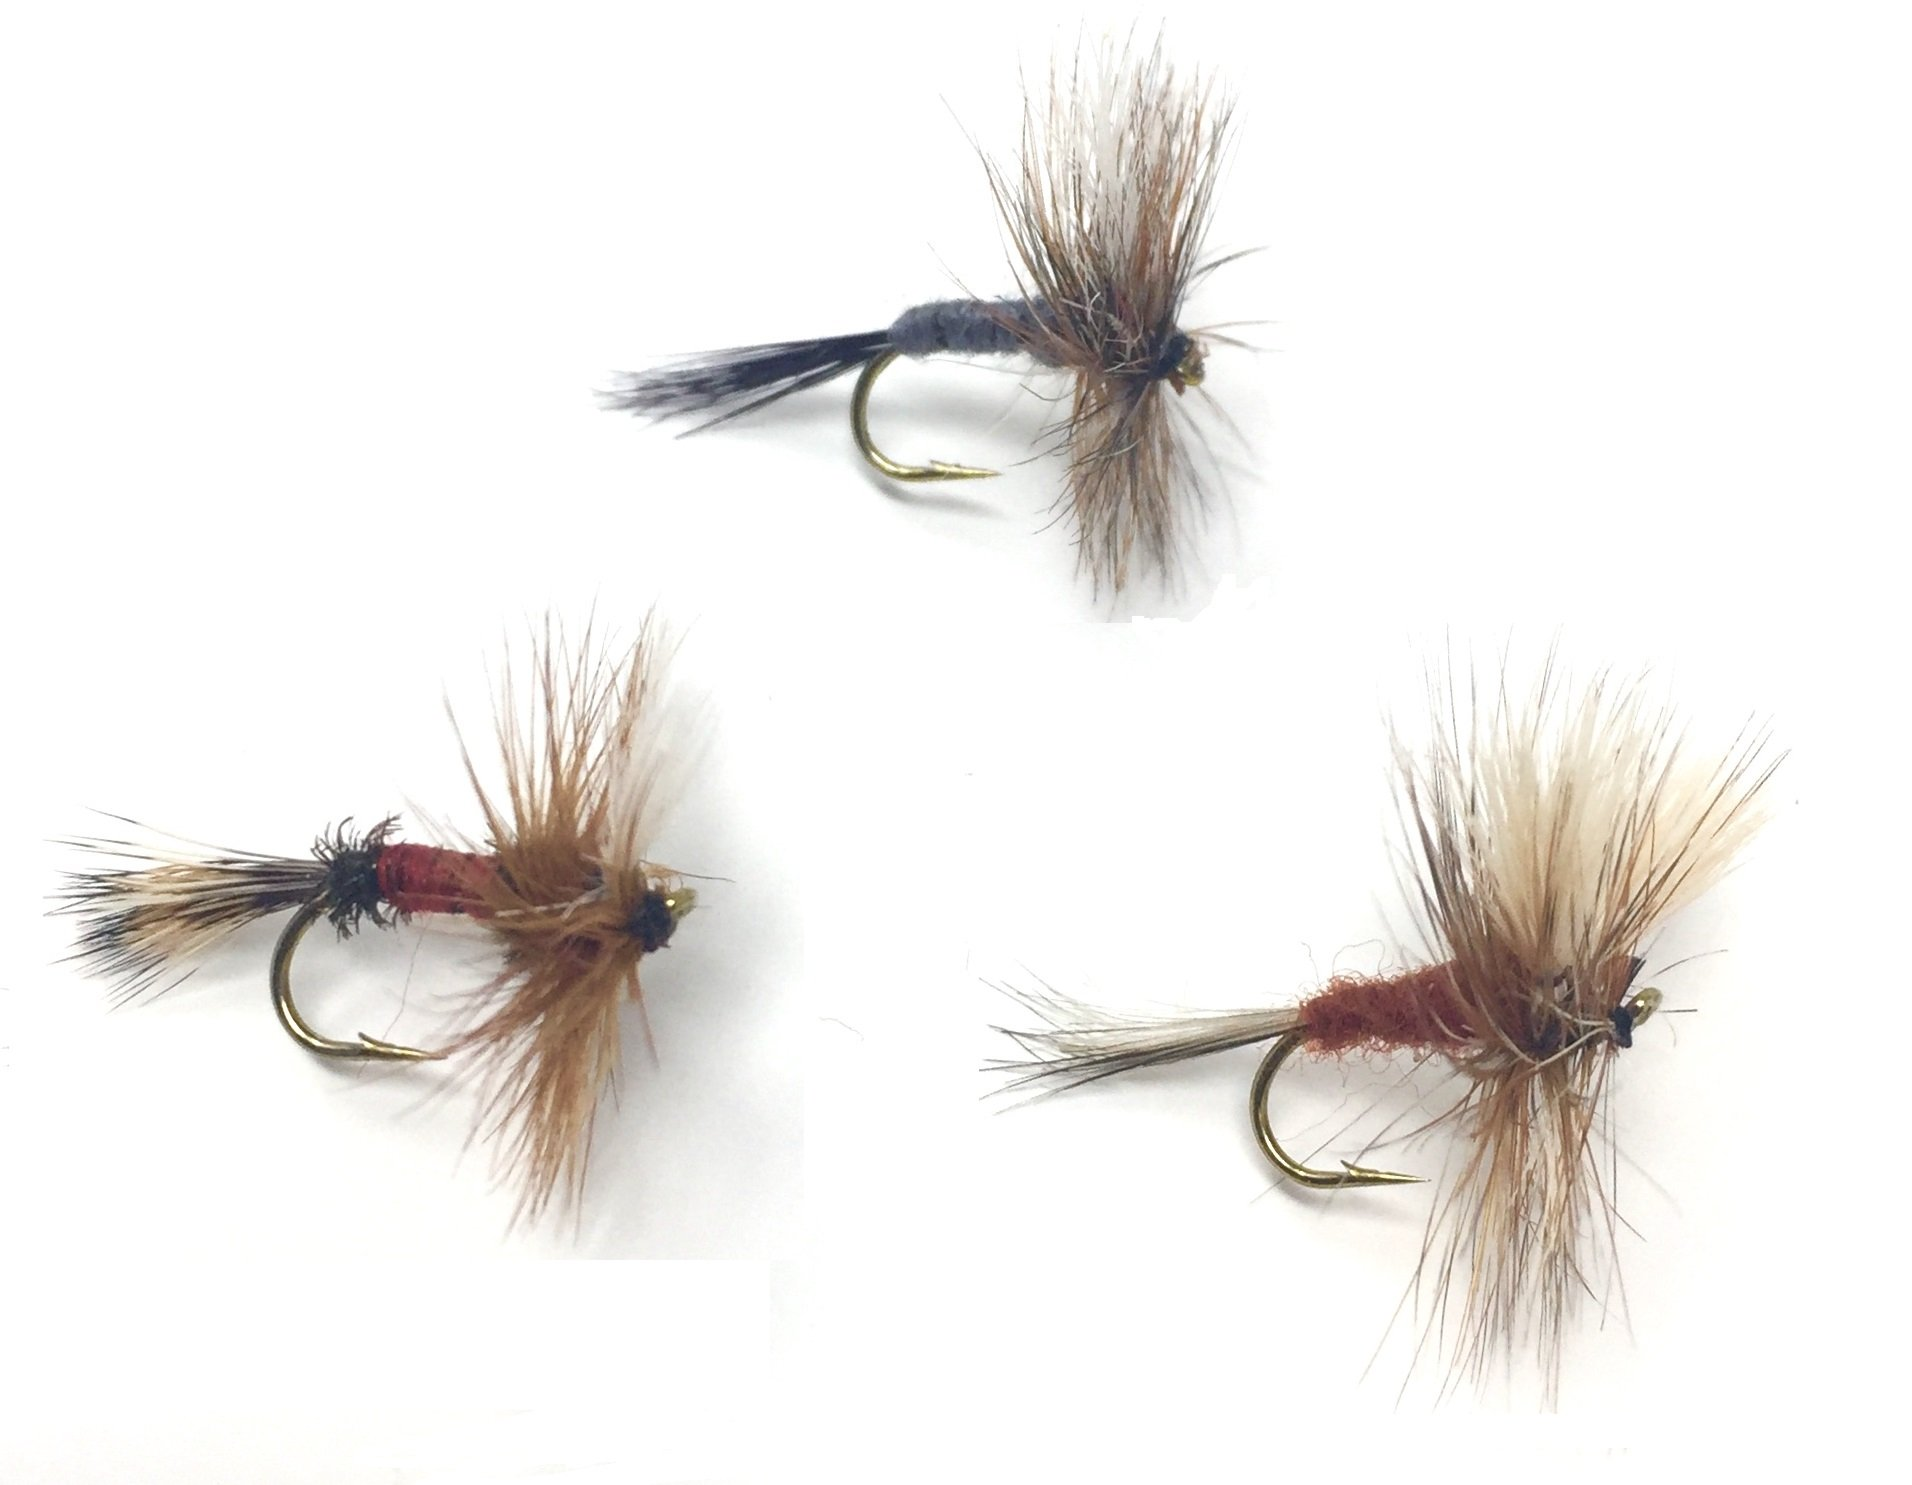 kesoto Woolly Bugger Trout Flies White /& Yellow 2 Pack Fly Fishing Flies